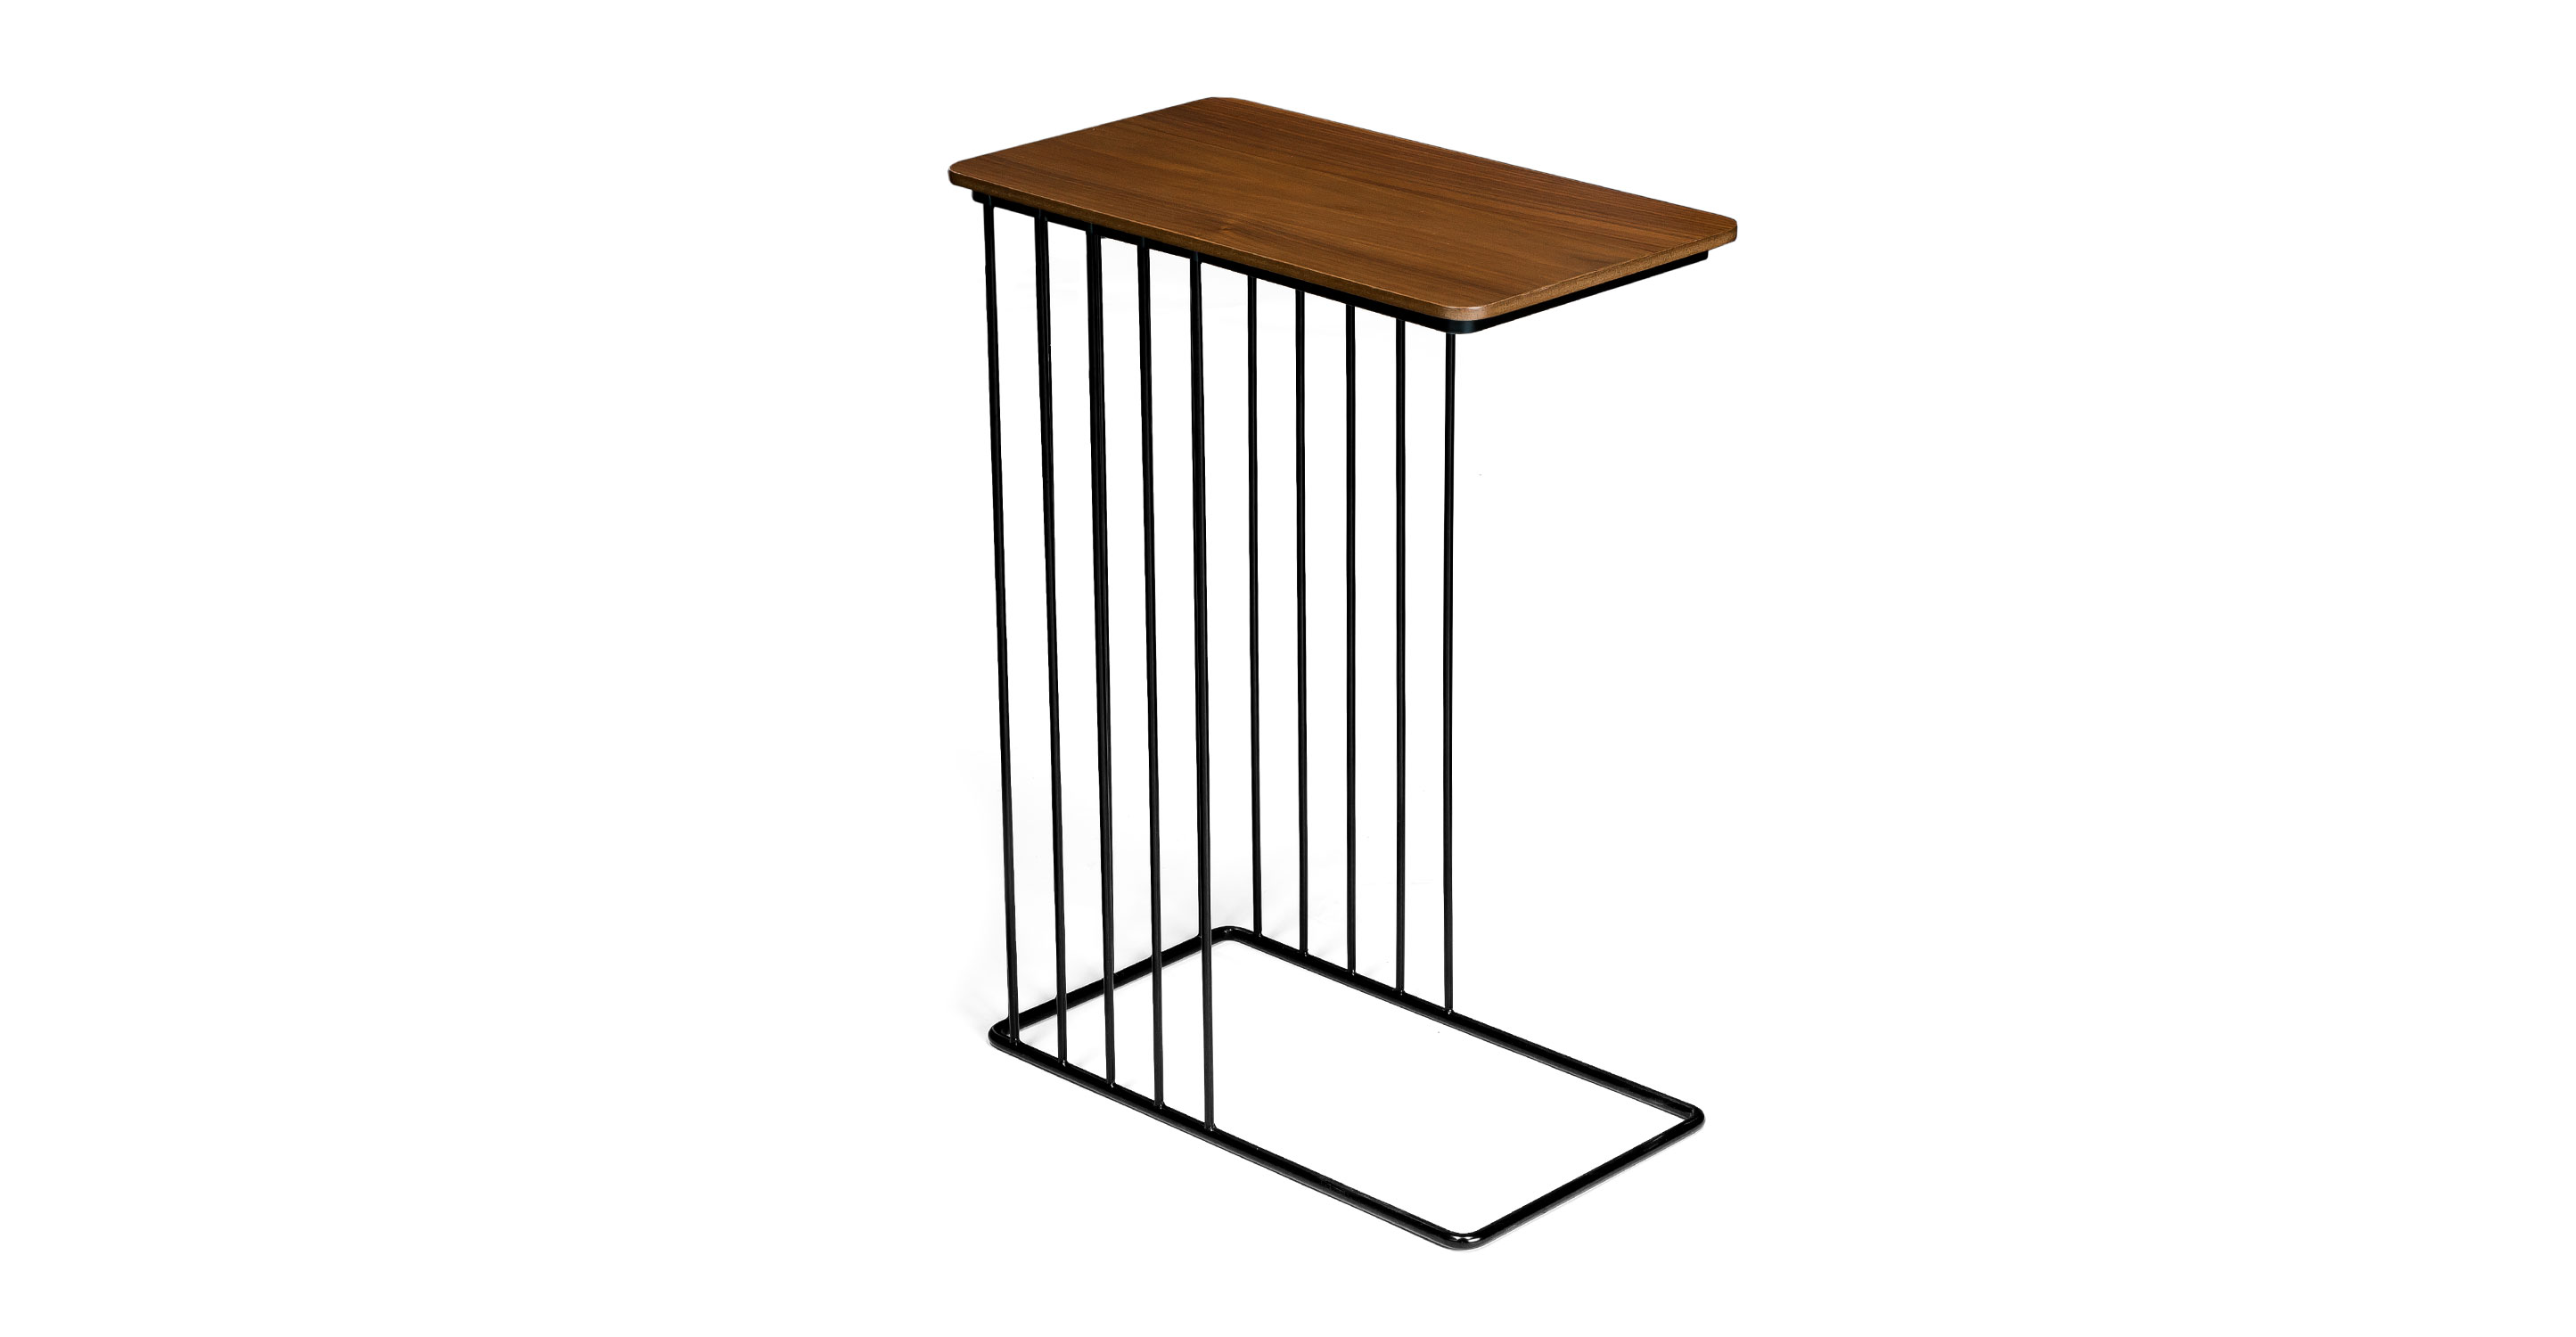 Whyr walnut side table coffee tables article modern for Walnut side table